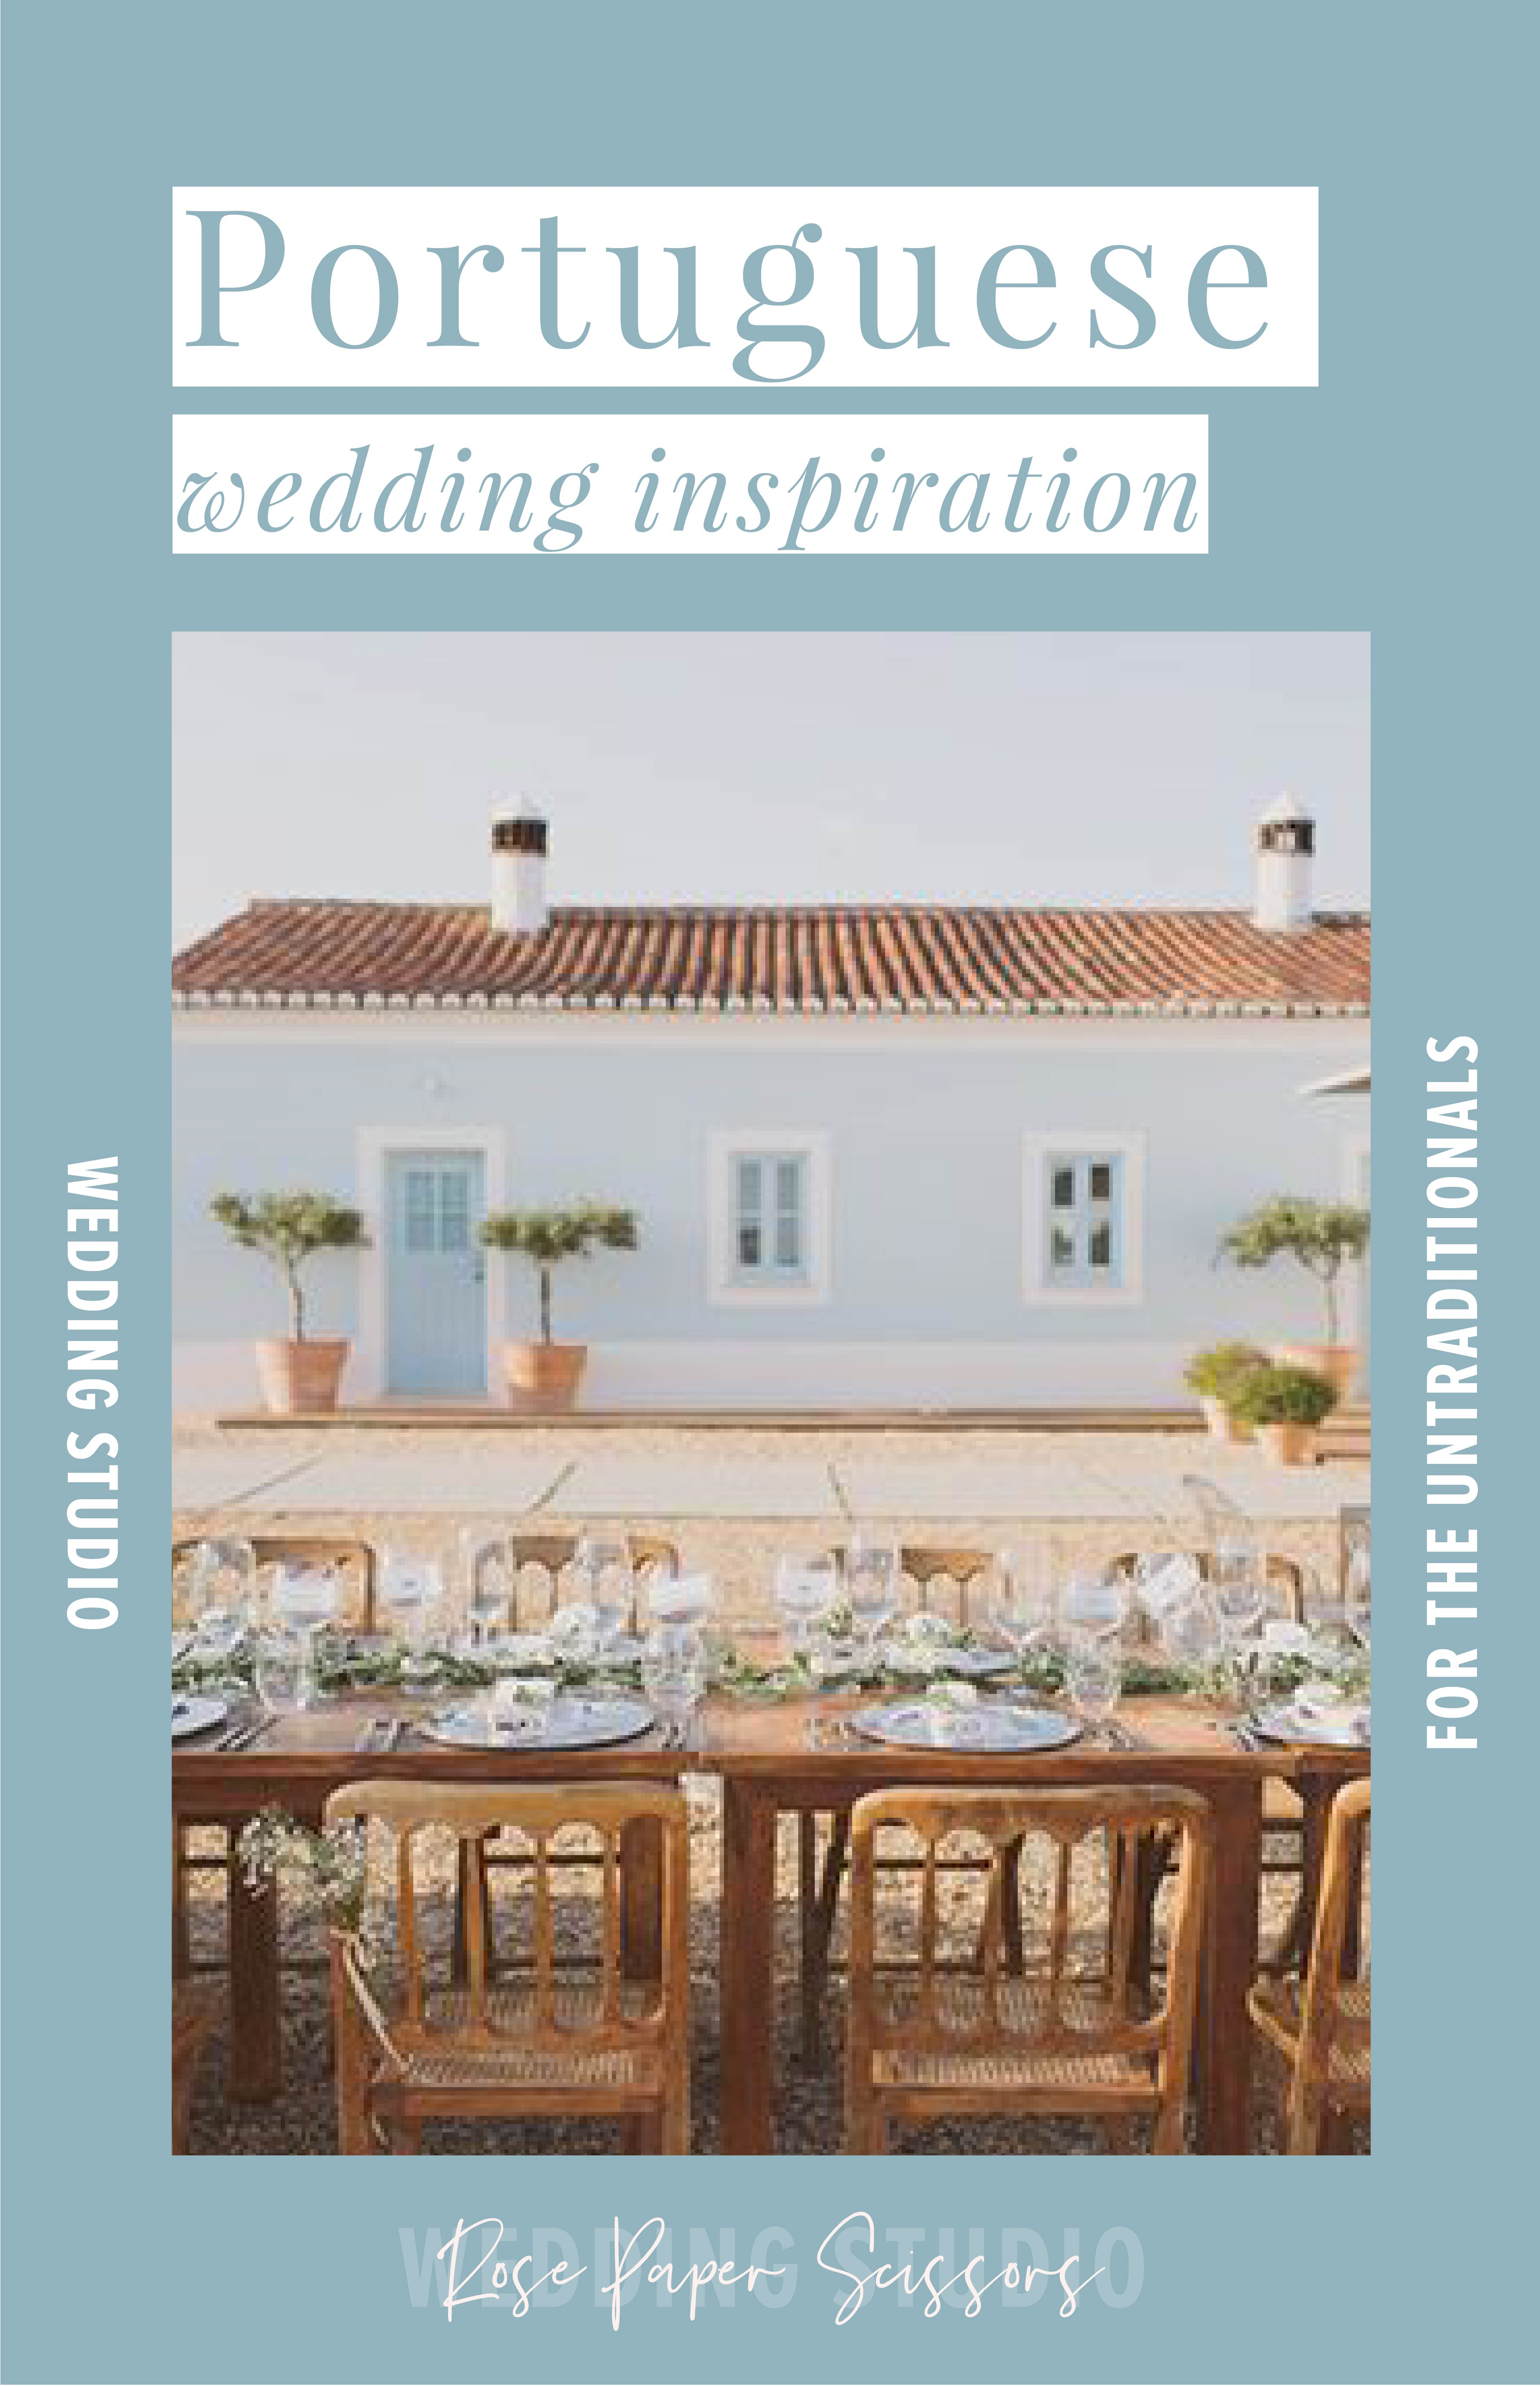 Portuguese wedding inspiration